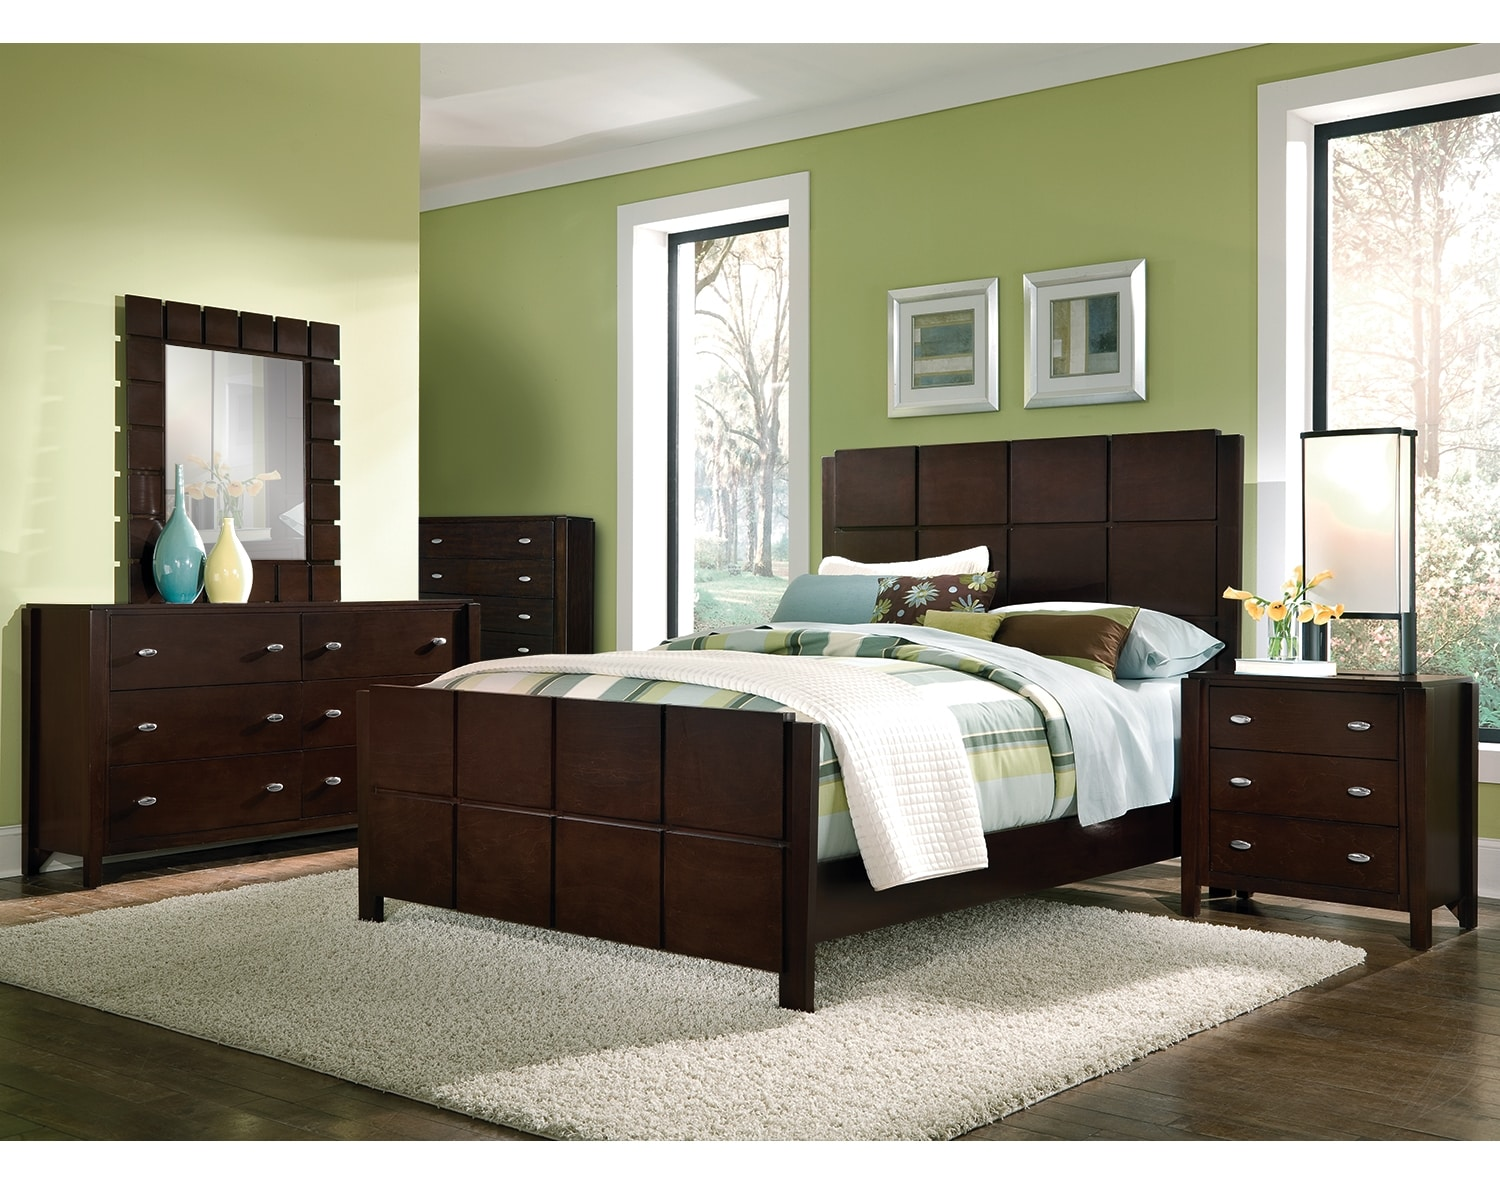 The Mosaic Collection Dark Brown Value City Furniture